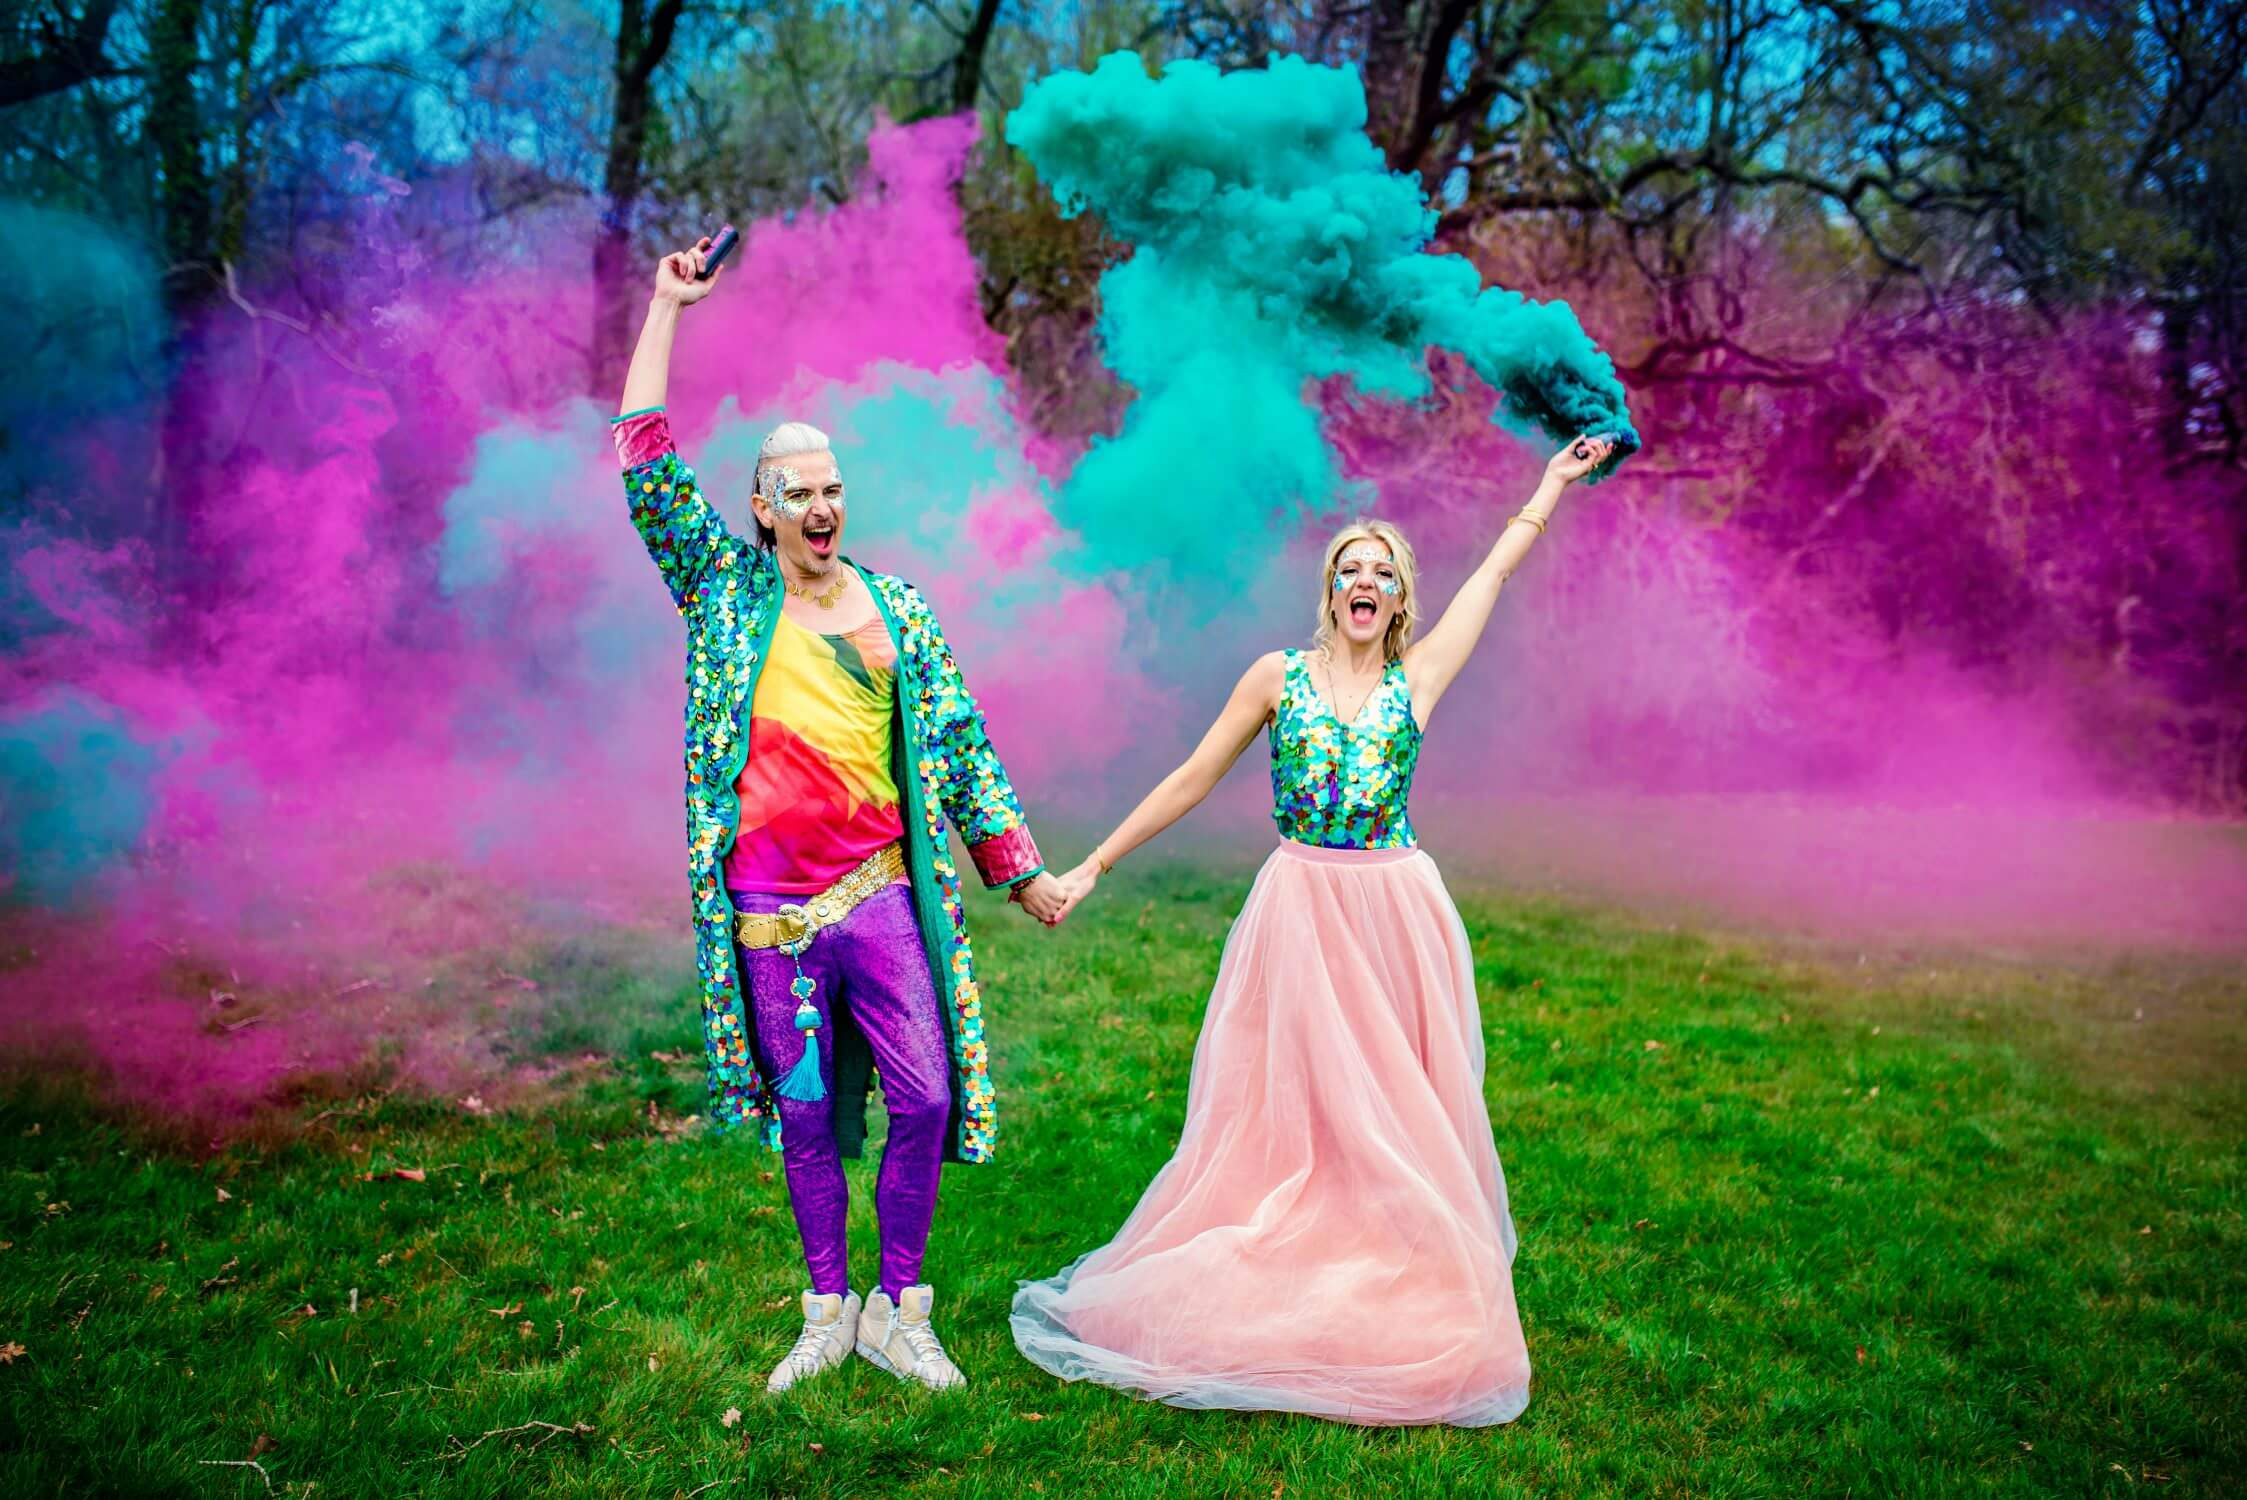 Colourful-Festival-Treehouse-Wedding-Photography-by-Vicki-19-2247x1500